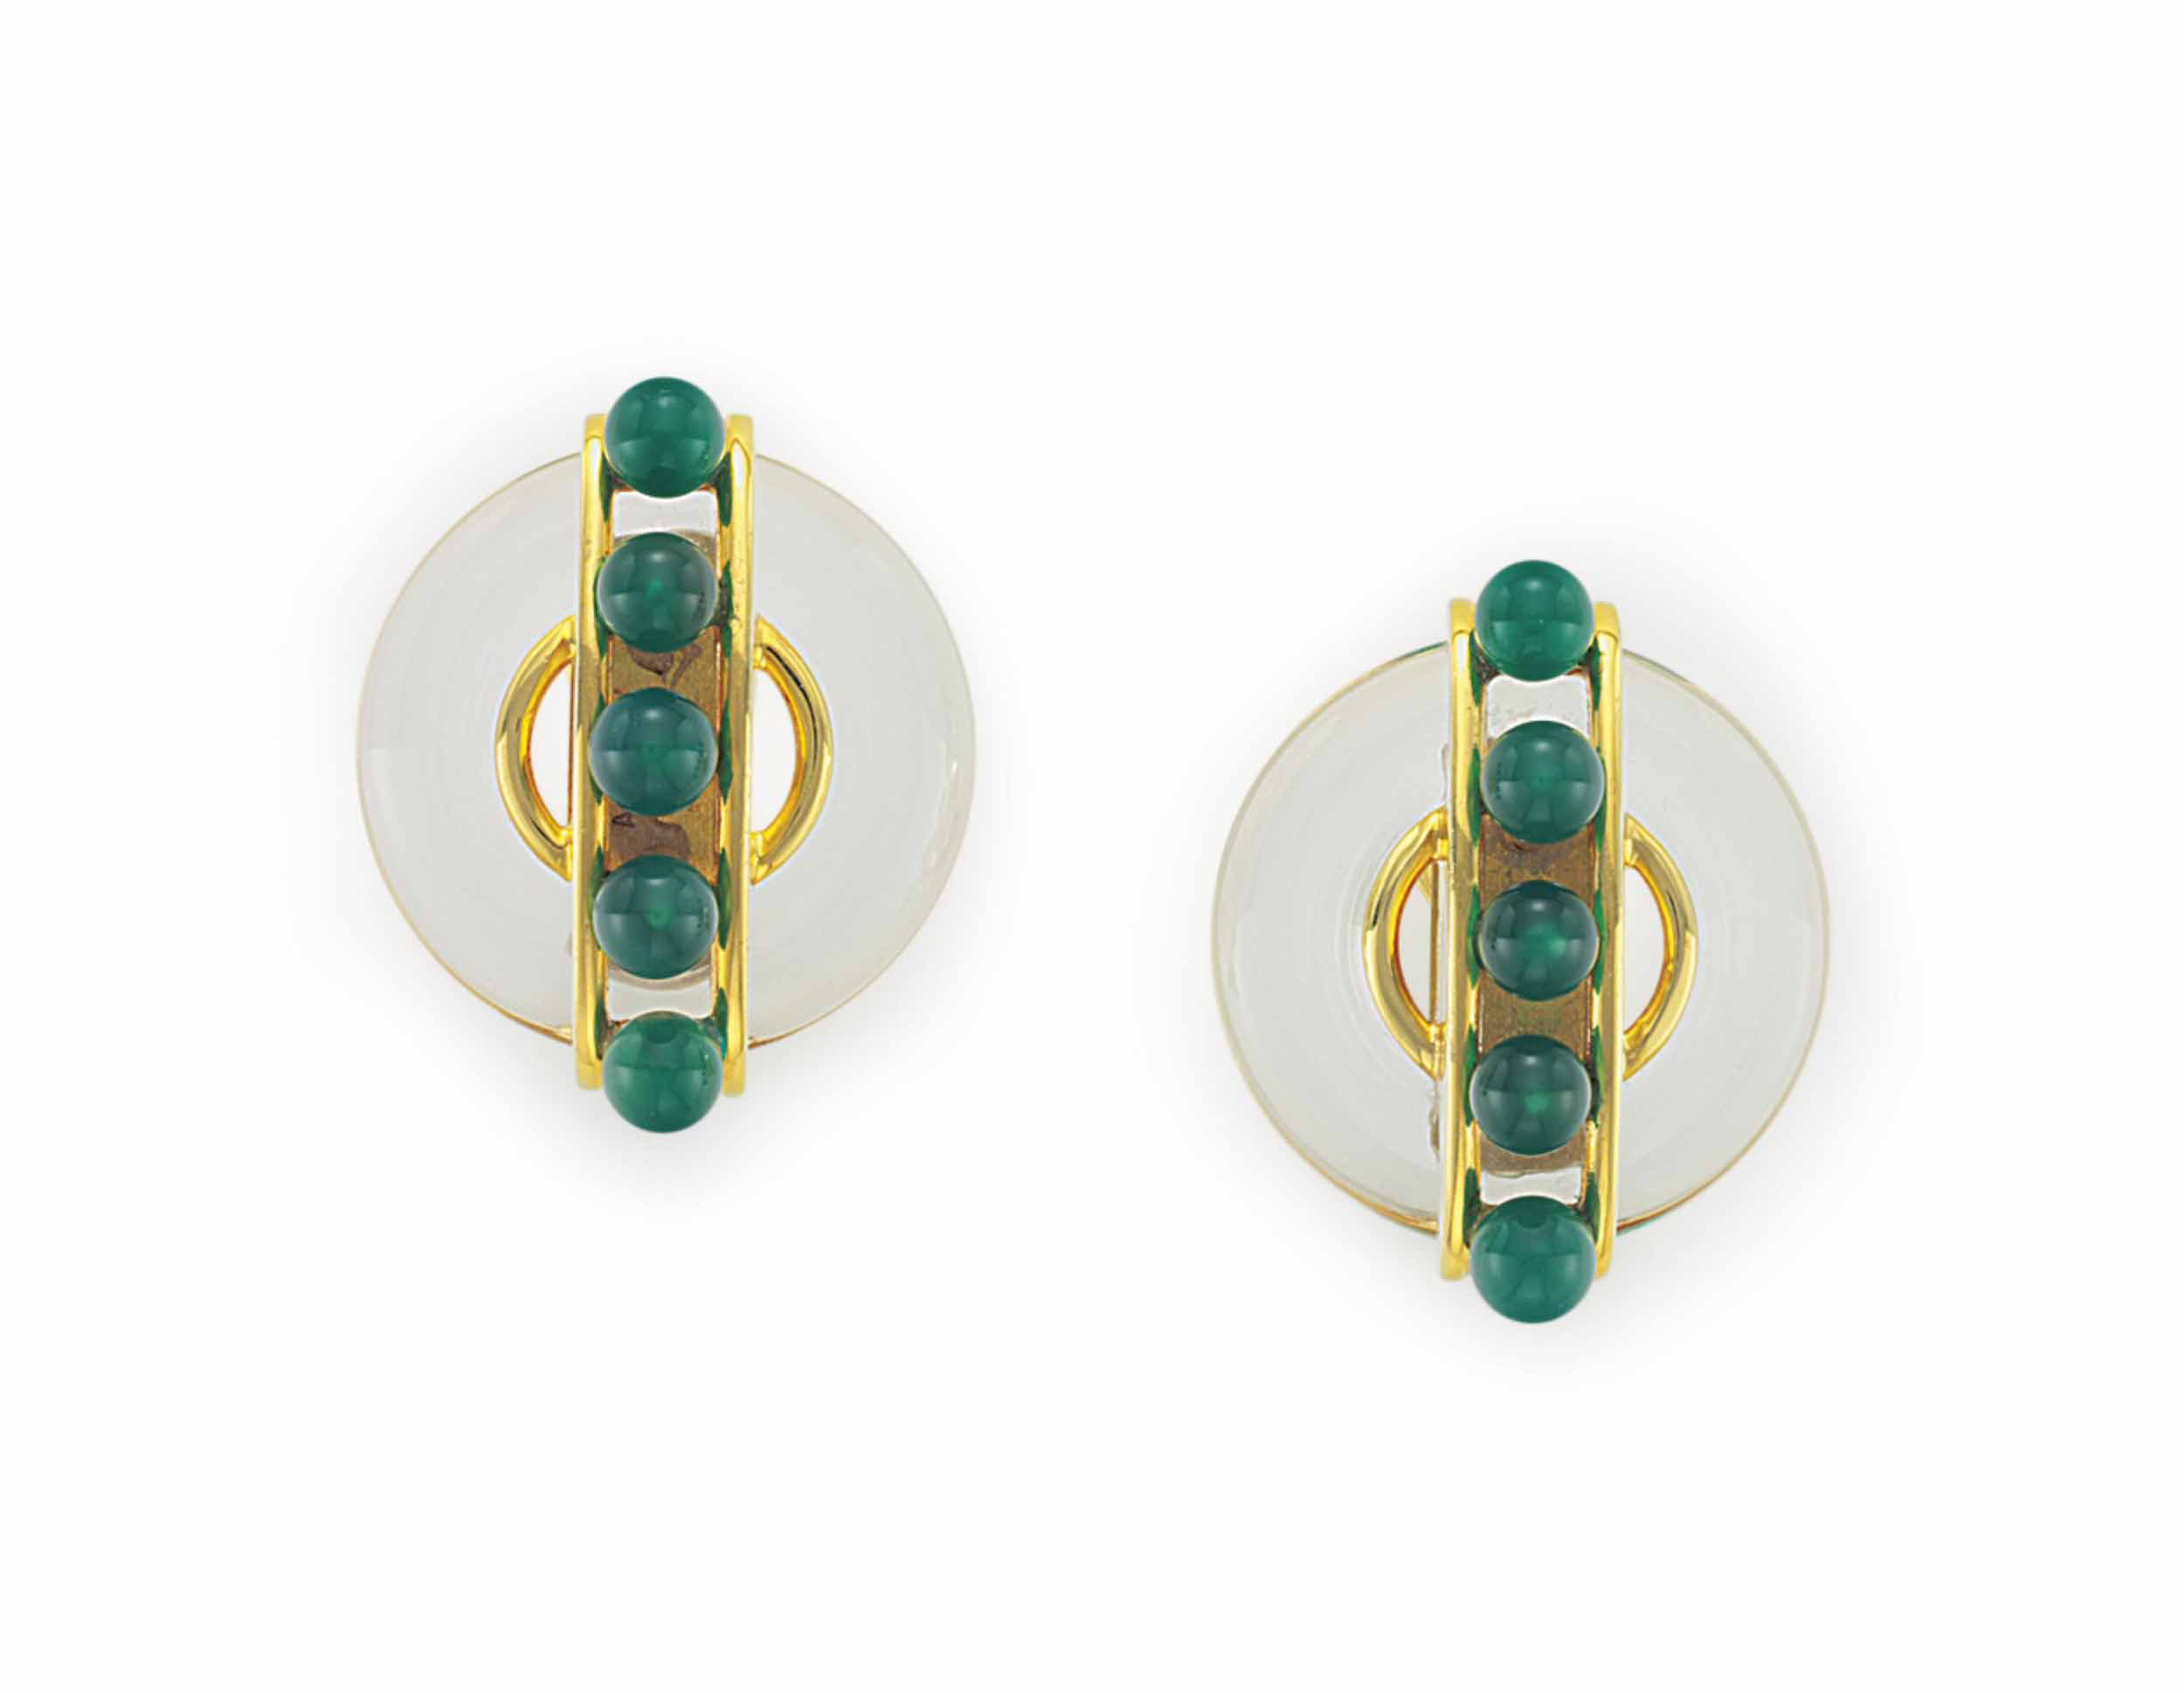 A PAIR OF ROCK CRYSTAL, CHALCEDONY AND GOLD EAR CLIPS, BY ALDO CIPULLO, CARTIER